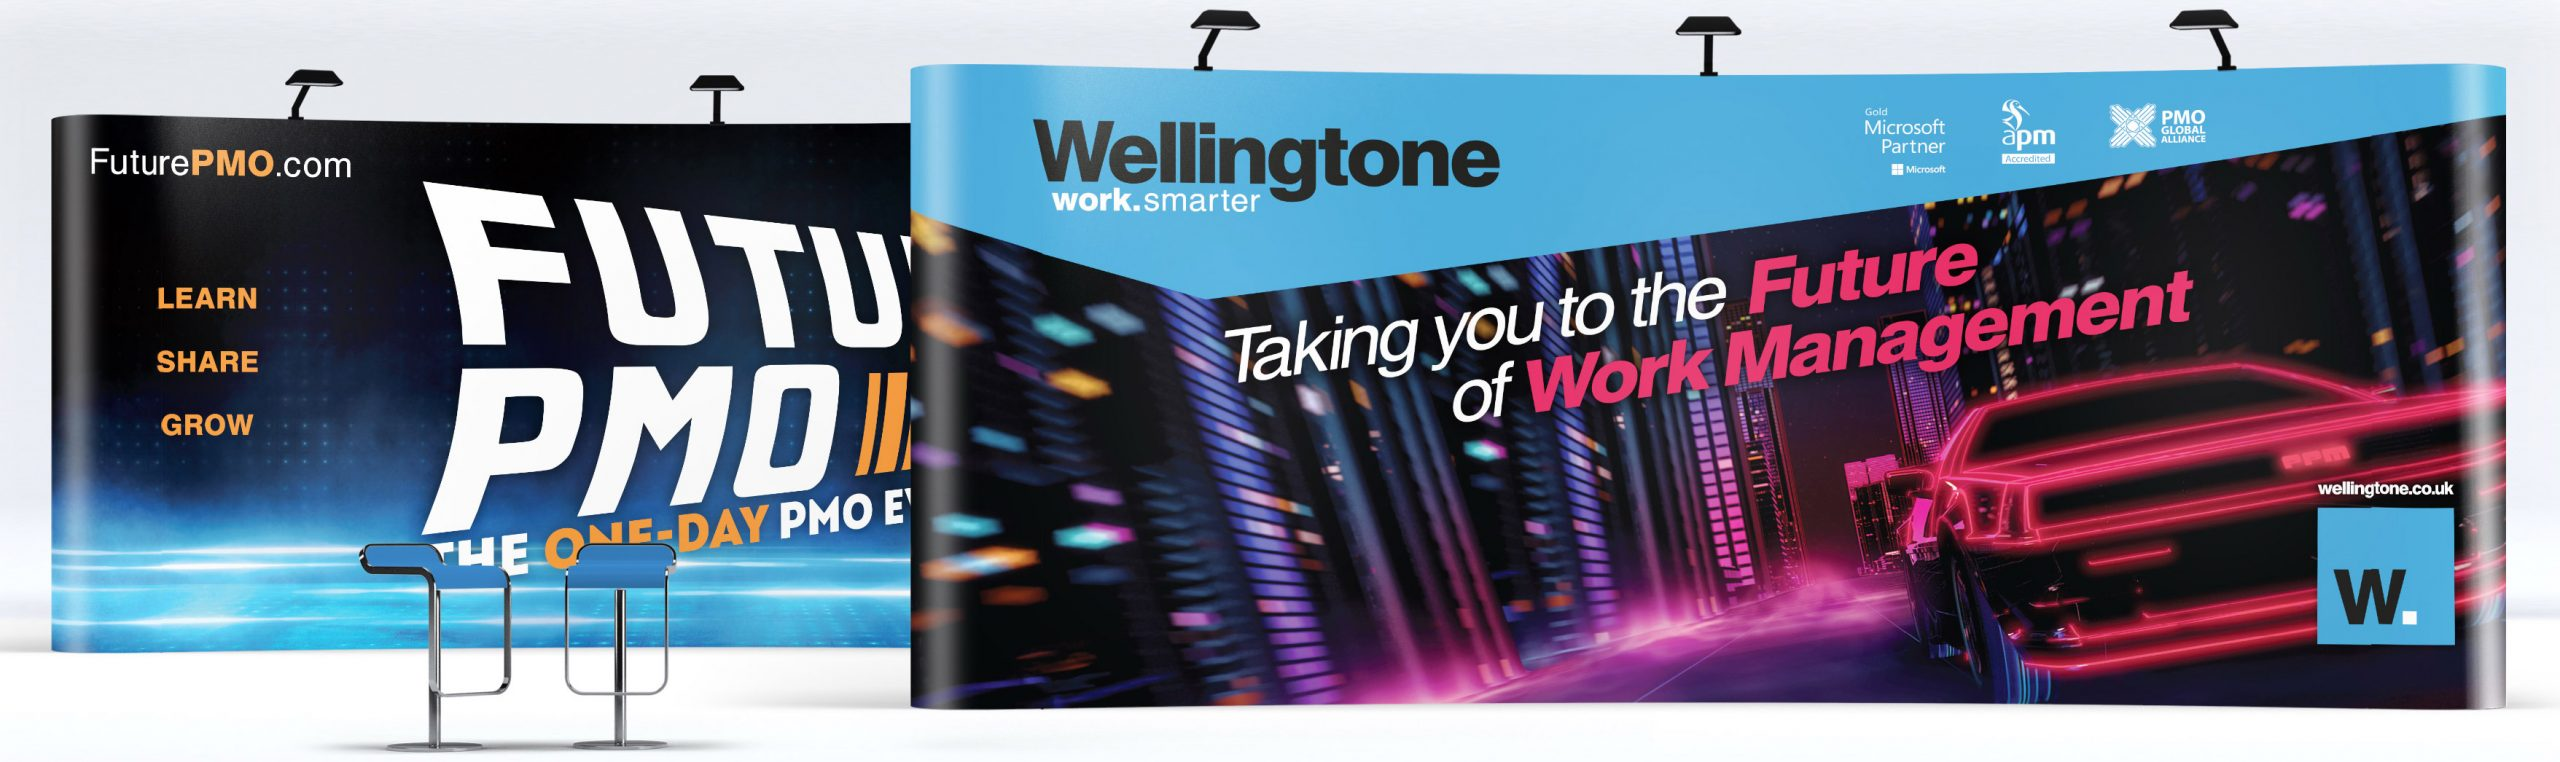 Wellingtone and FuturePMO tradeshow banners